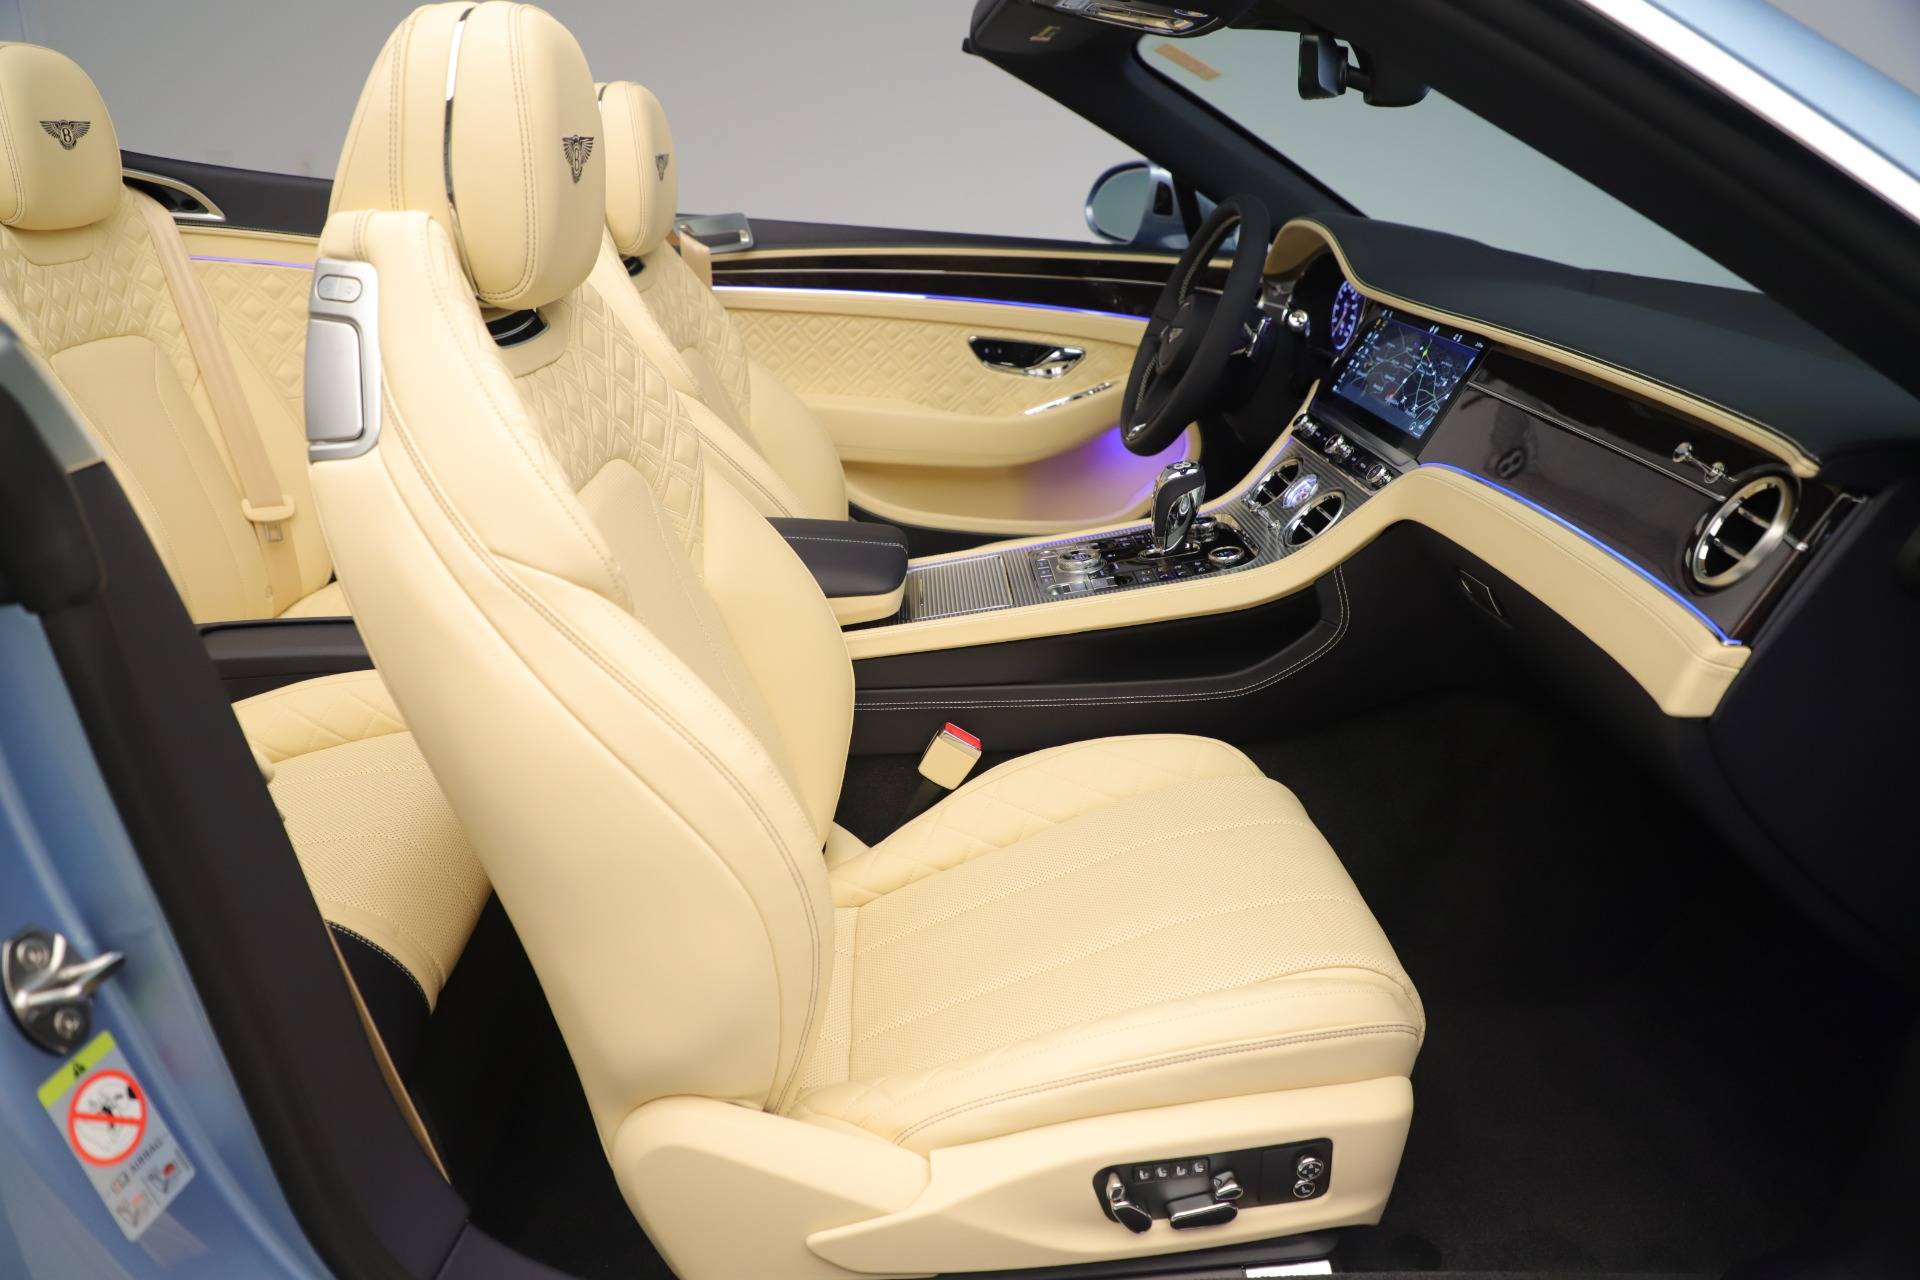 Used 2020 Bentley Continental GTC V8 For Sale In Westport, CT 3472_p31